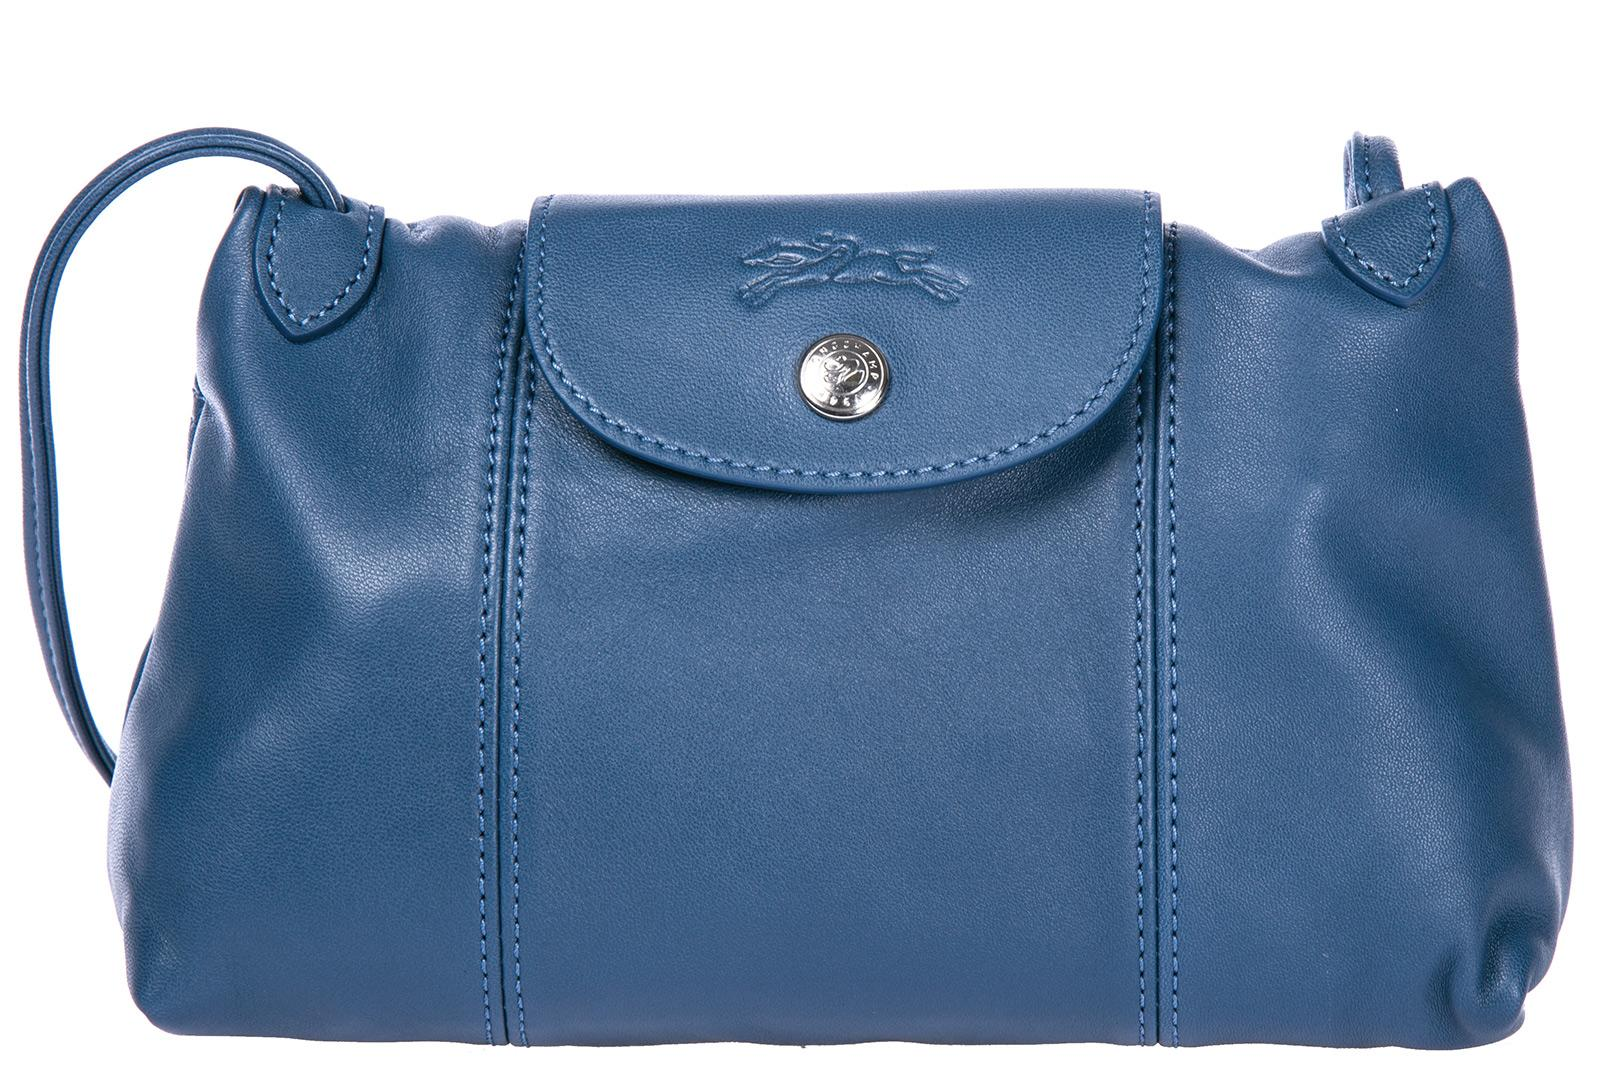 Longchamp Women's Leather Cross-body Messenger Shoulder Bag In Blue